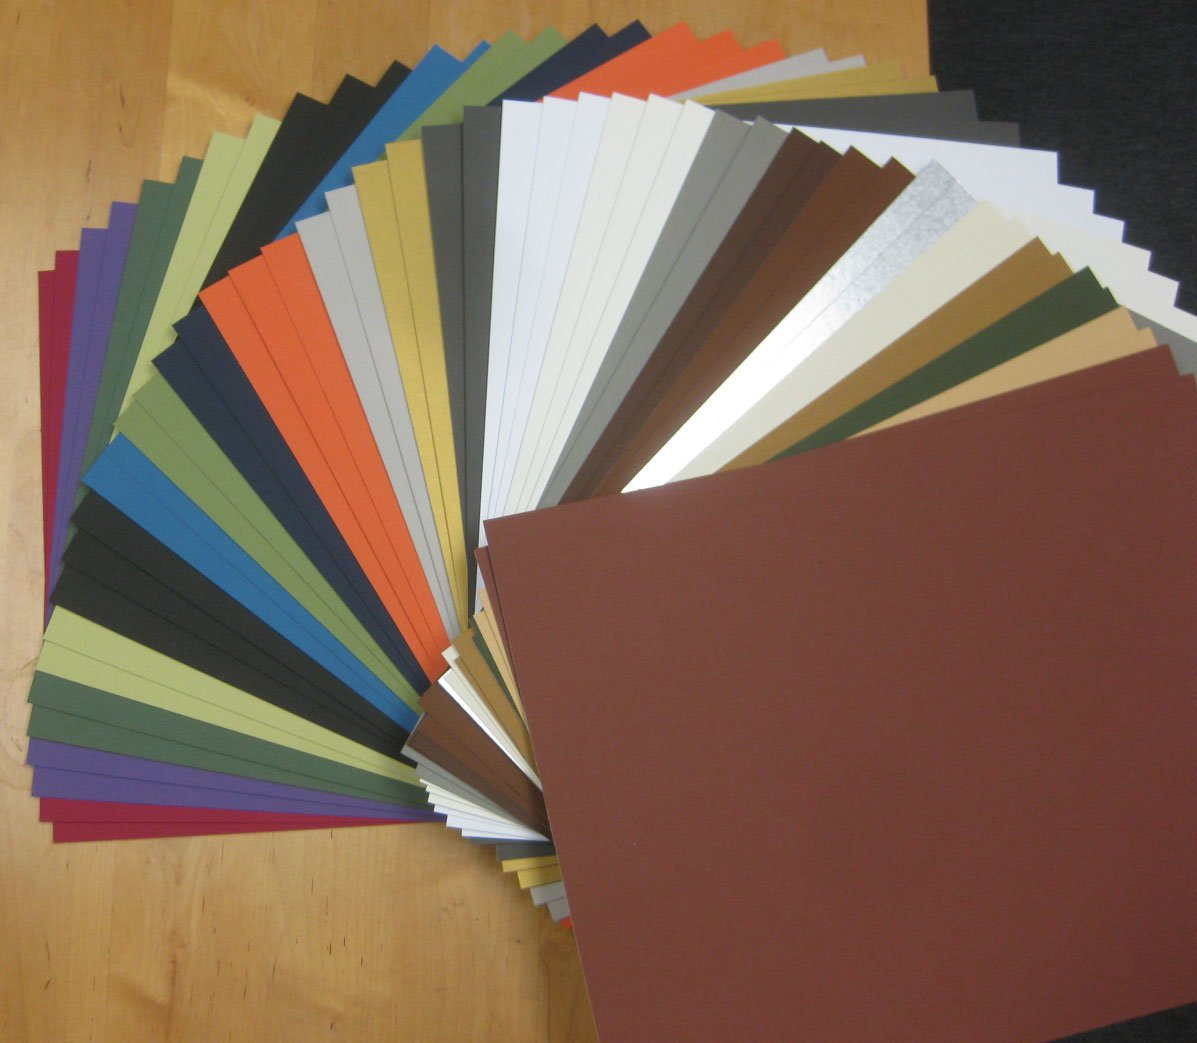 (50) 16x20 Matboard Mat Board Blanks-ASSORTMENT Golden State Art T2S1620MB-MIX50